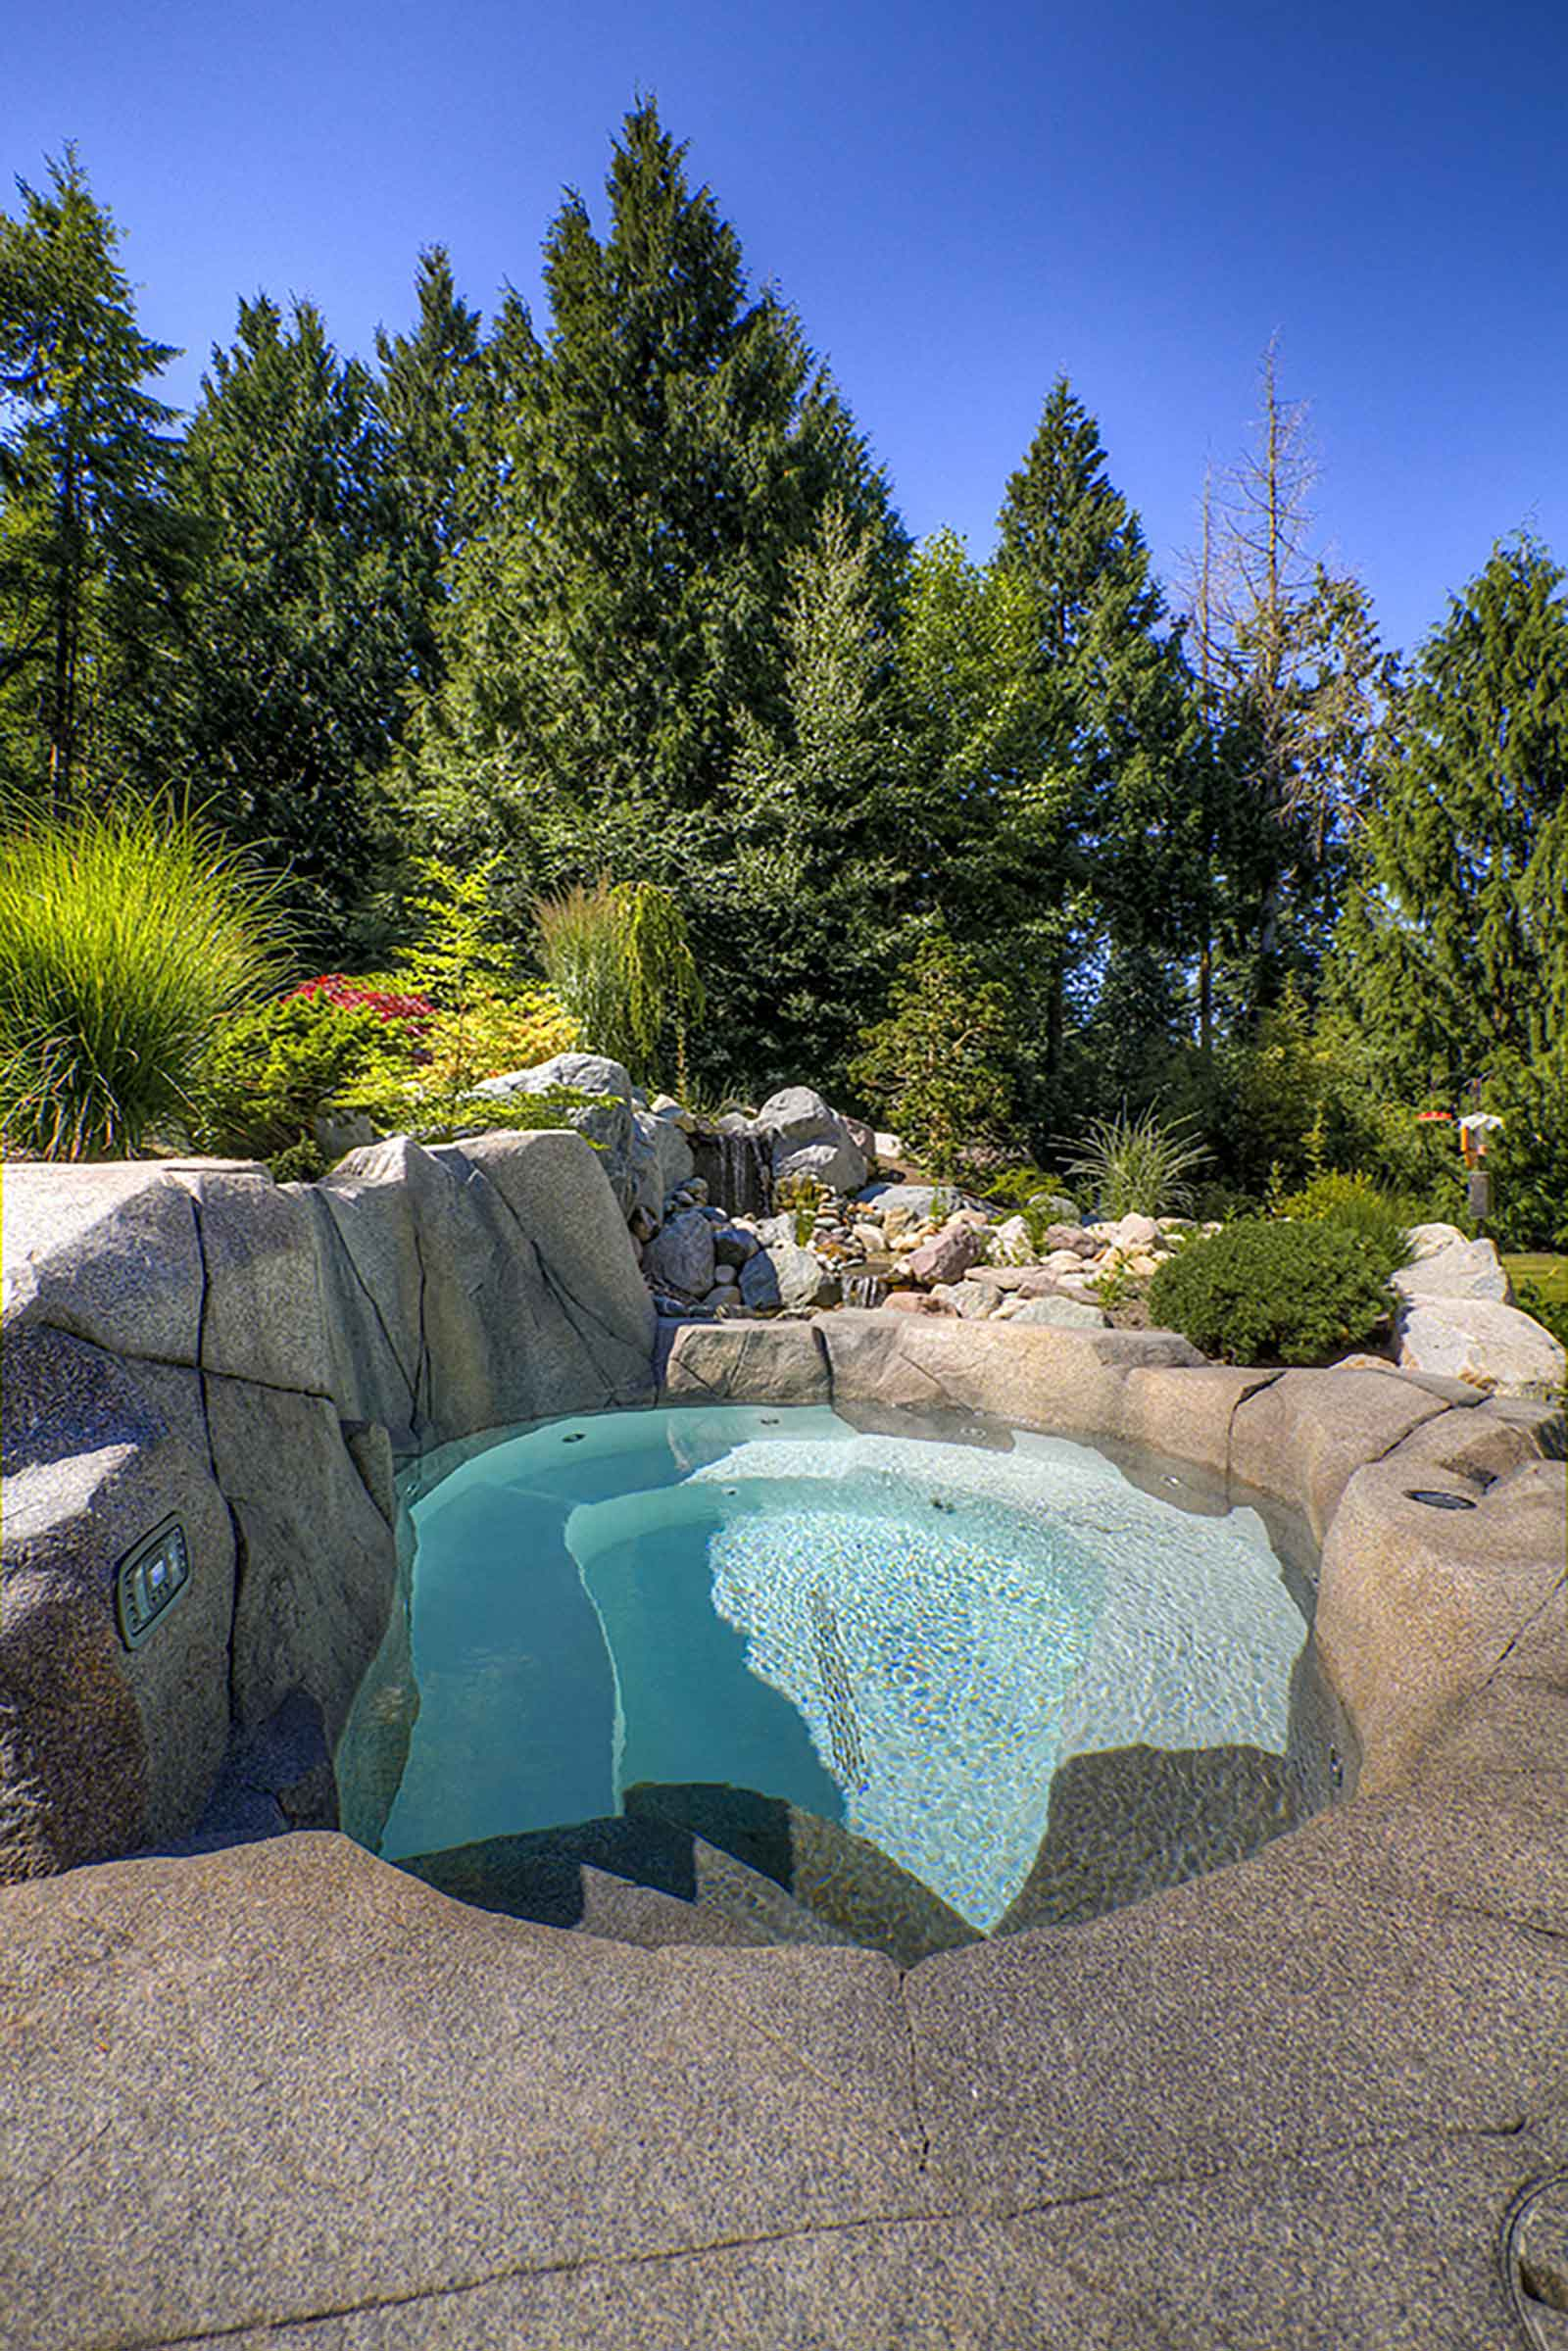 Private backyard hot tub